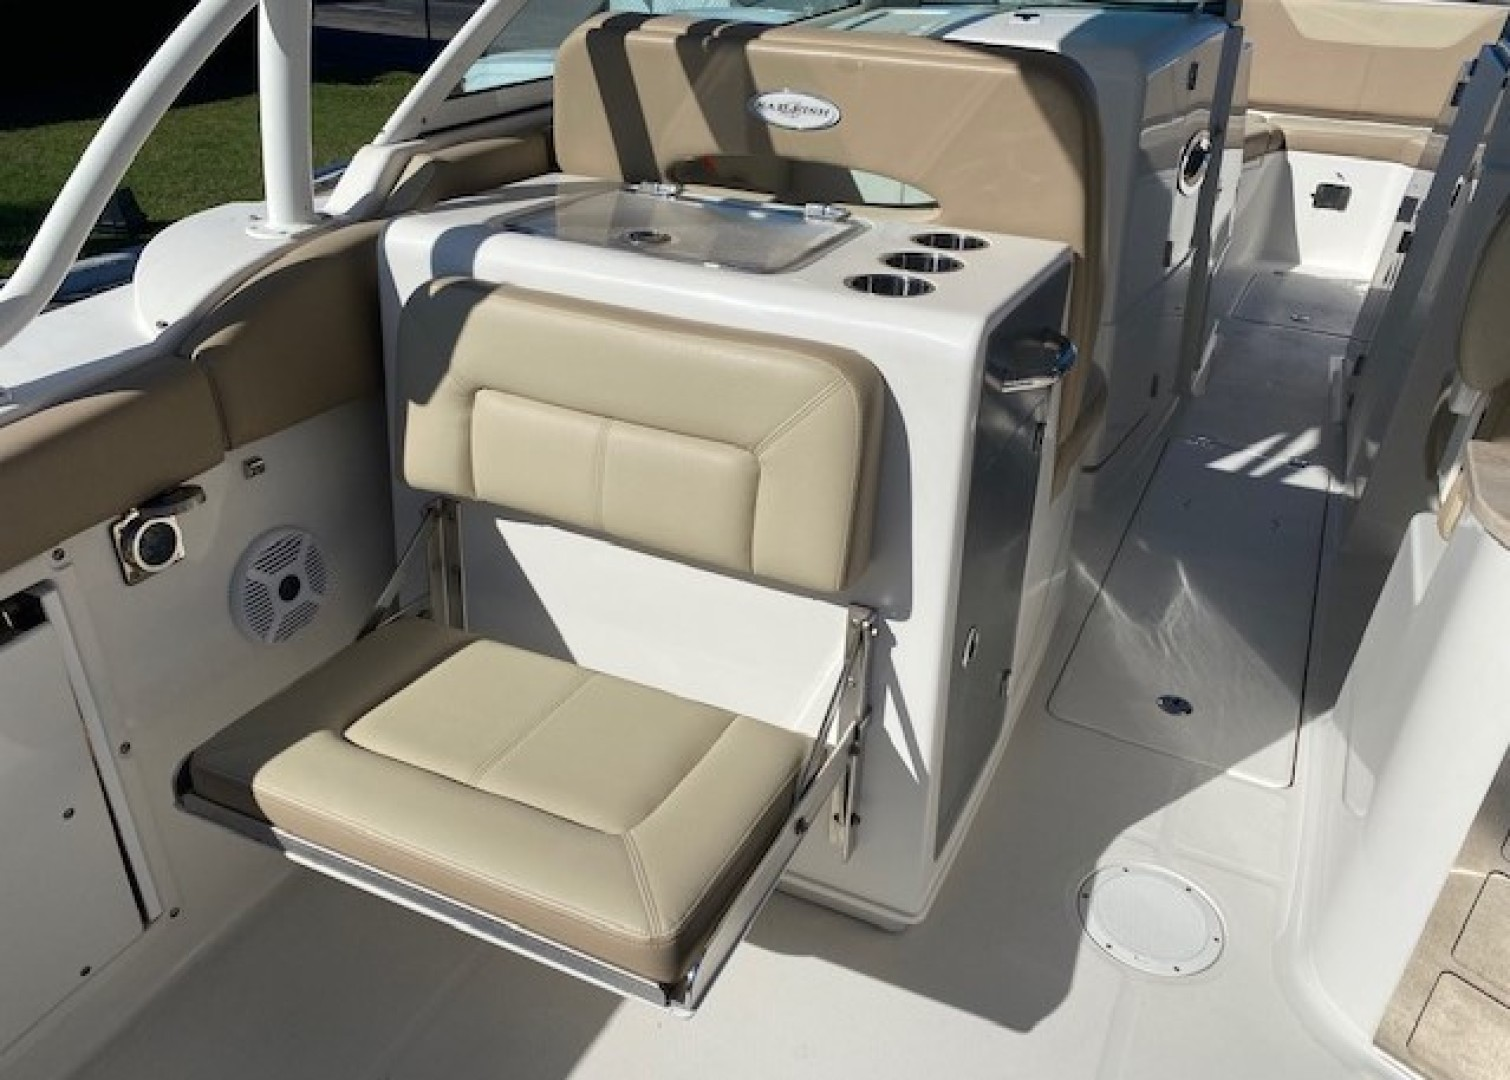 Sailfish-325 Dual Console 2017 -Tampa Bay-Florida-United States-1565706 | Thumbnail